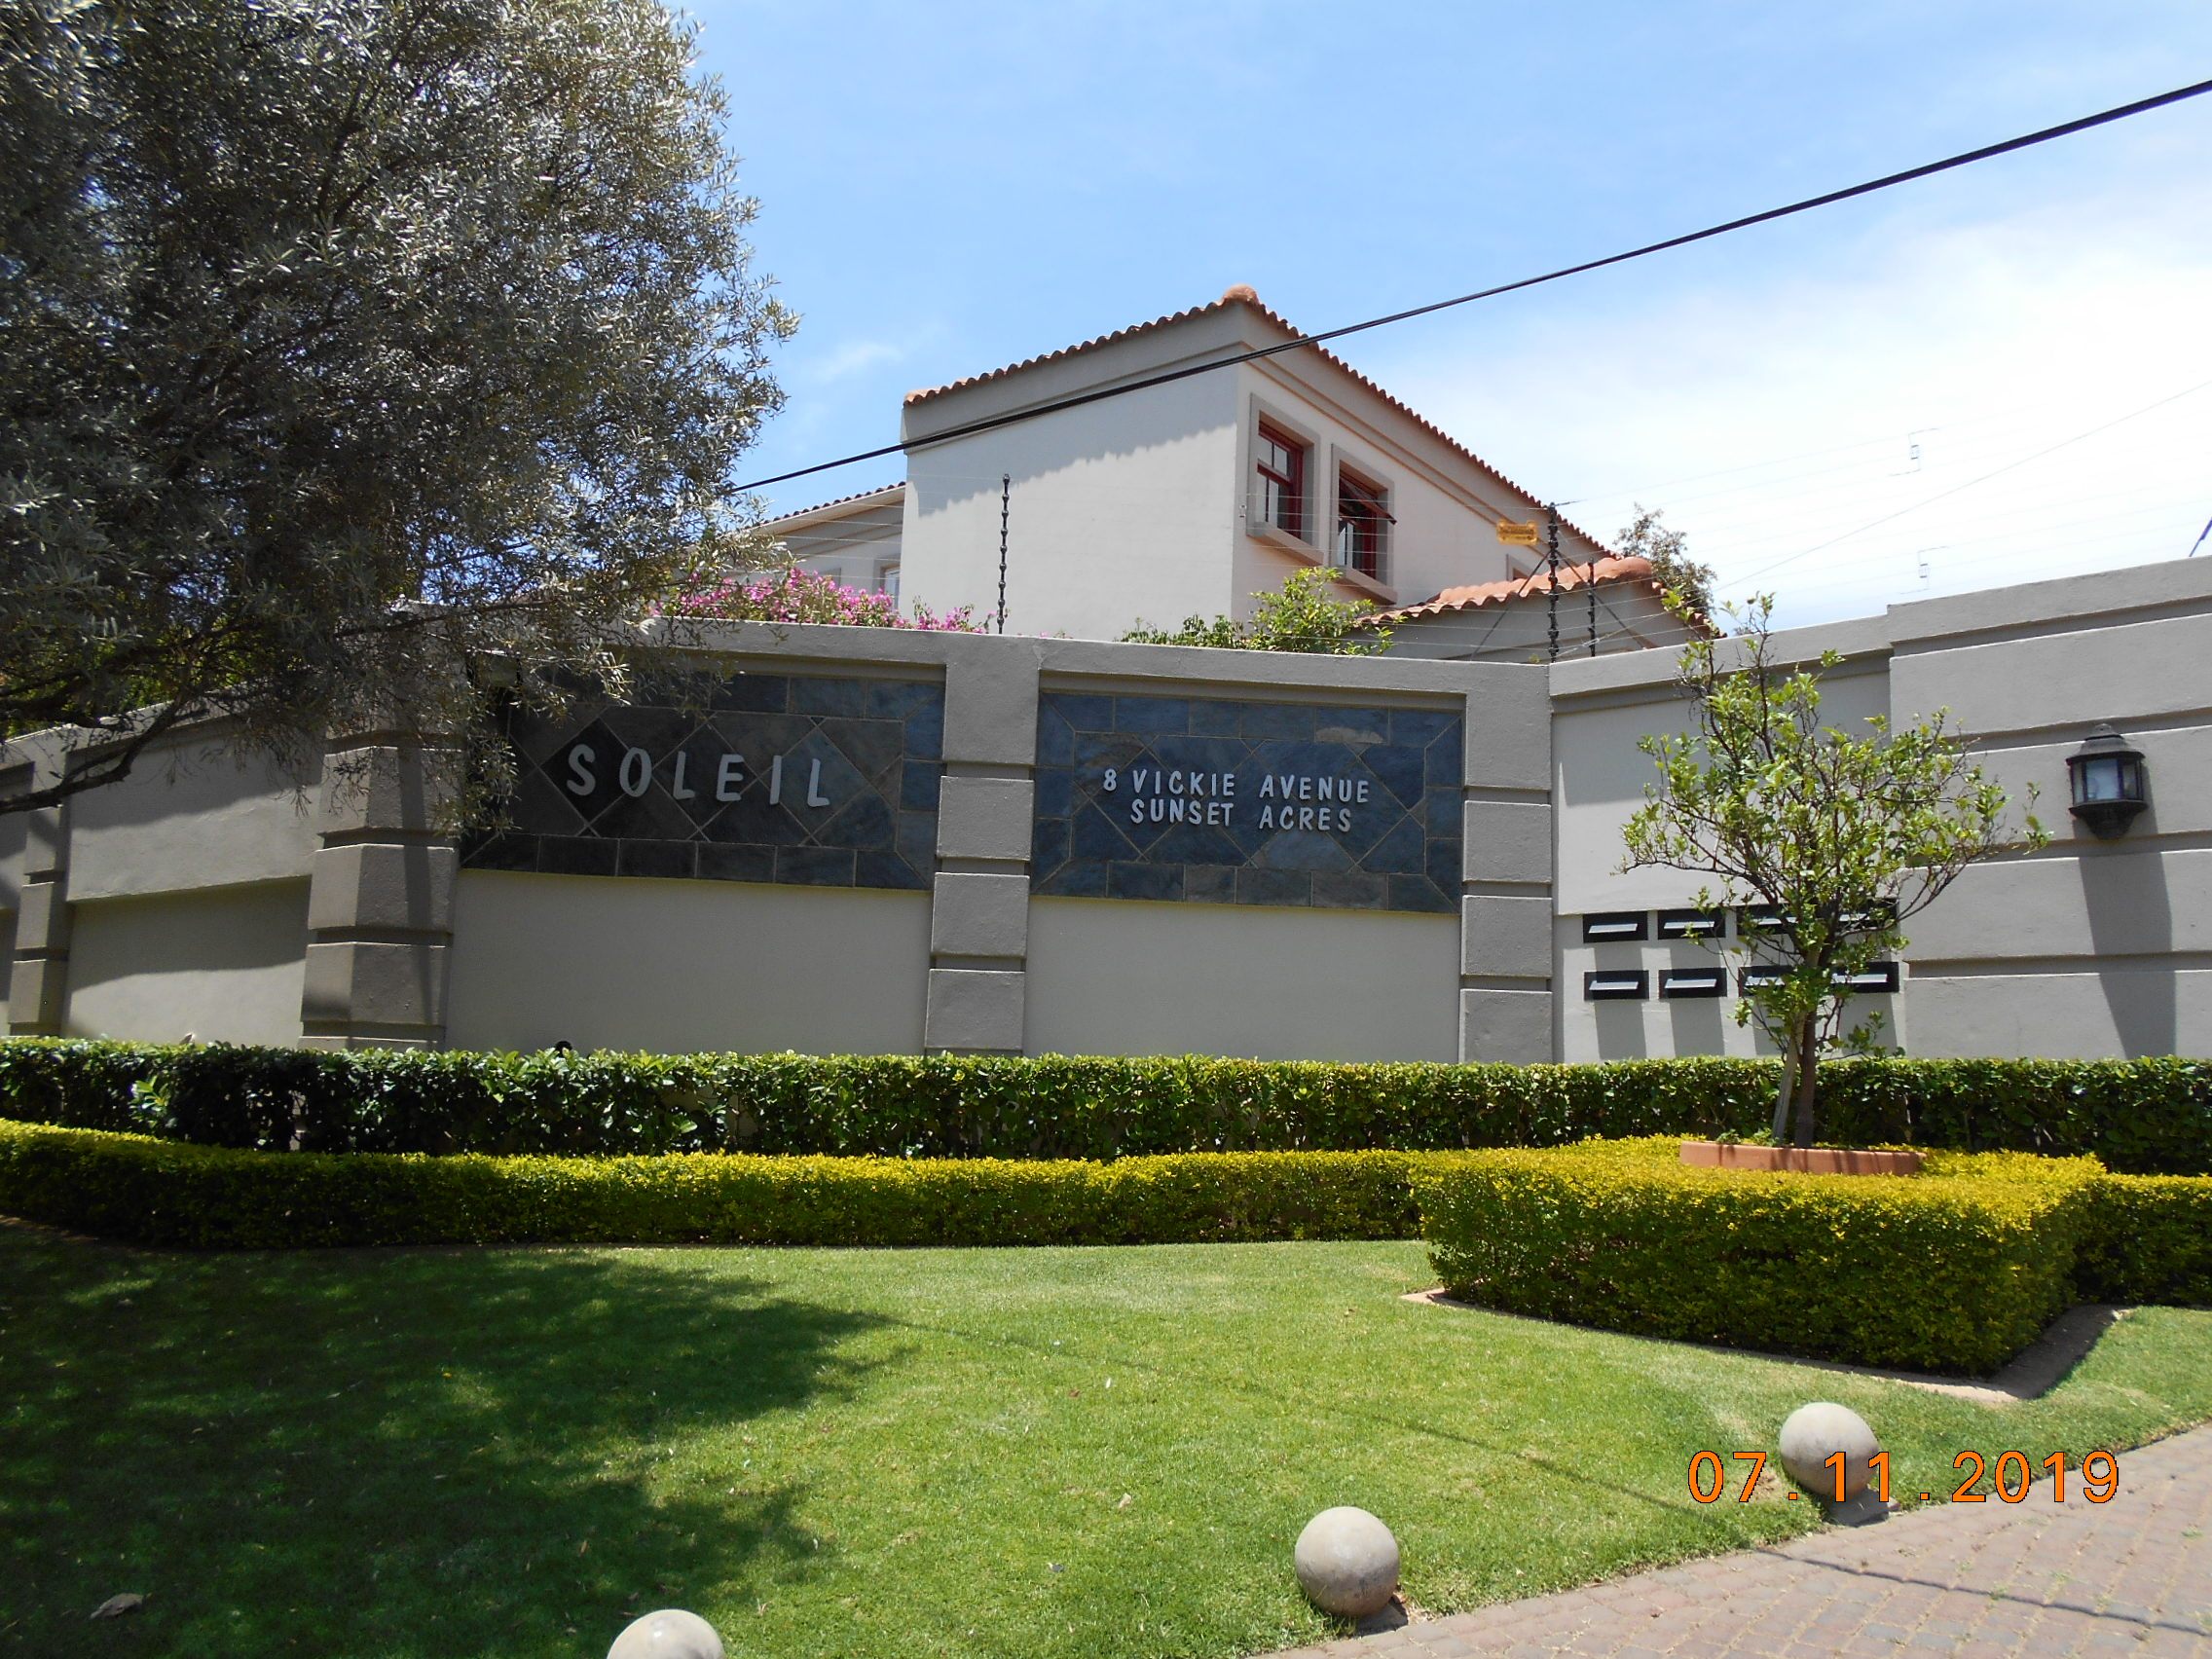 Soleil: 8 luxury Morningside units